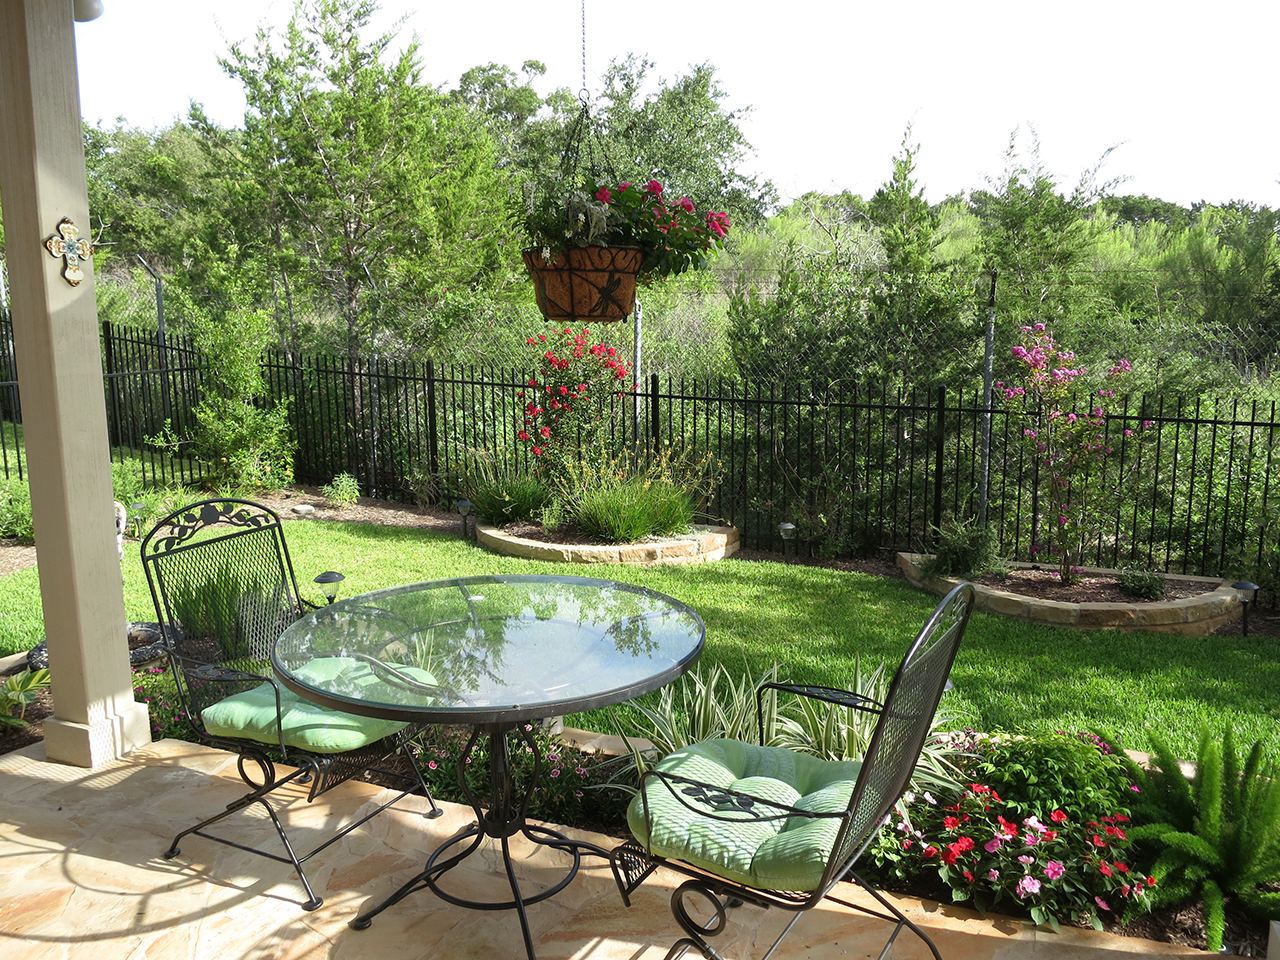 50 Best Backyard Landscaping Ideas and Designs in 2020 on Best Backyard Landscaping id=52856